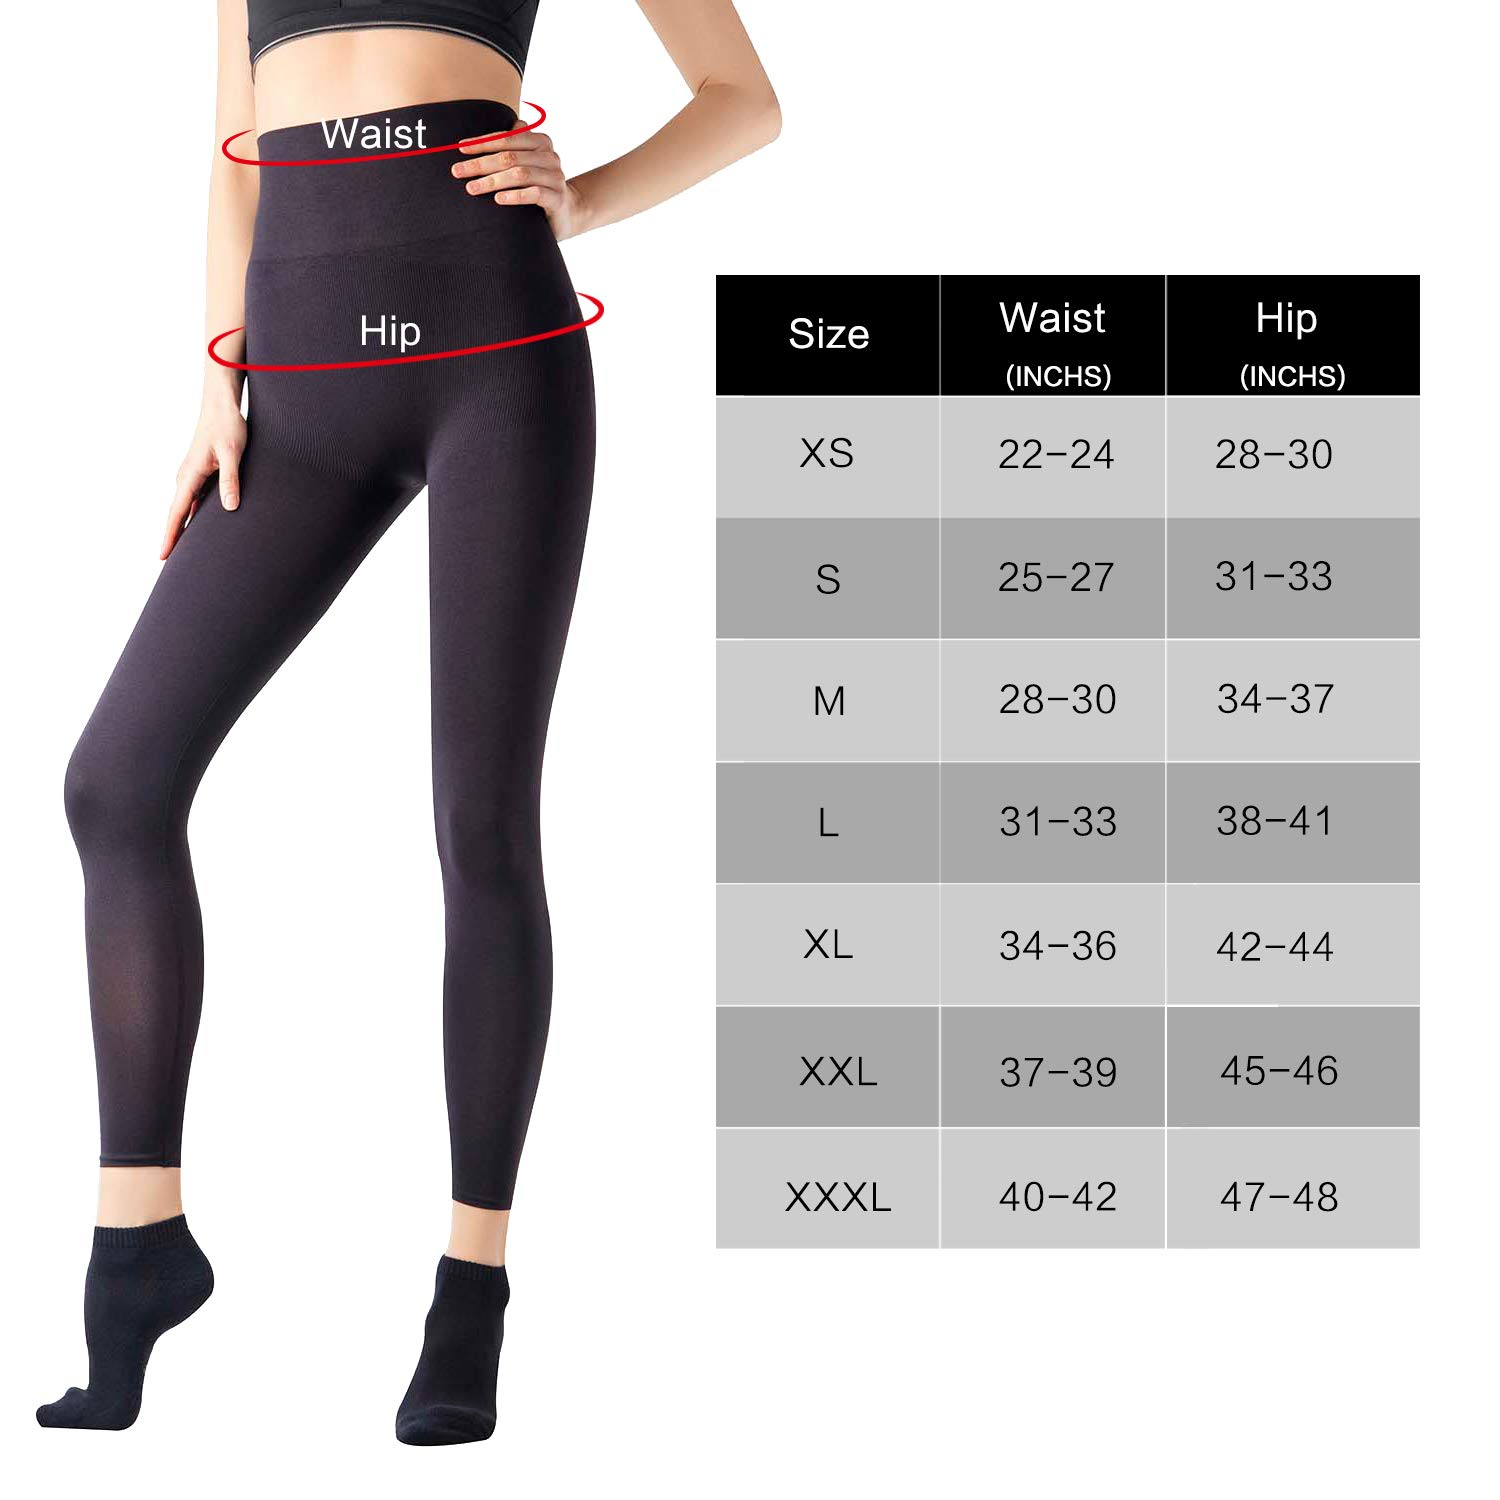 443d3c3f32 MD Women s High Waist Shapewear Compression Slimming Leggings Tight Tummy  Hips and Thigh Medium Control Shaper